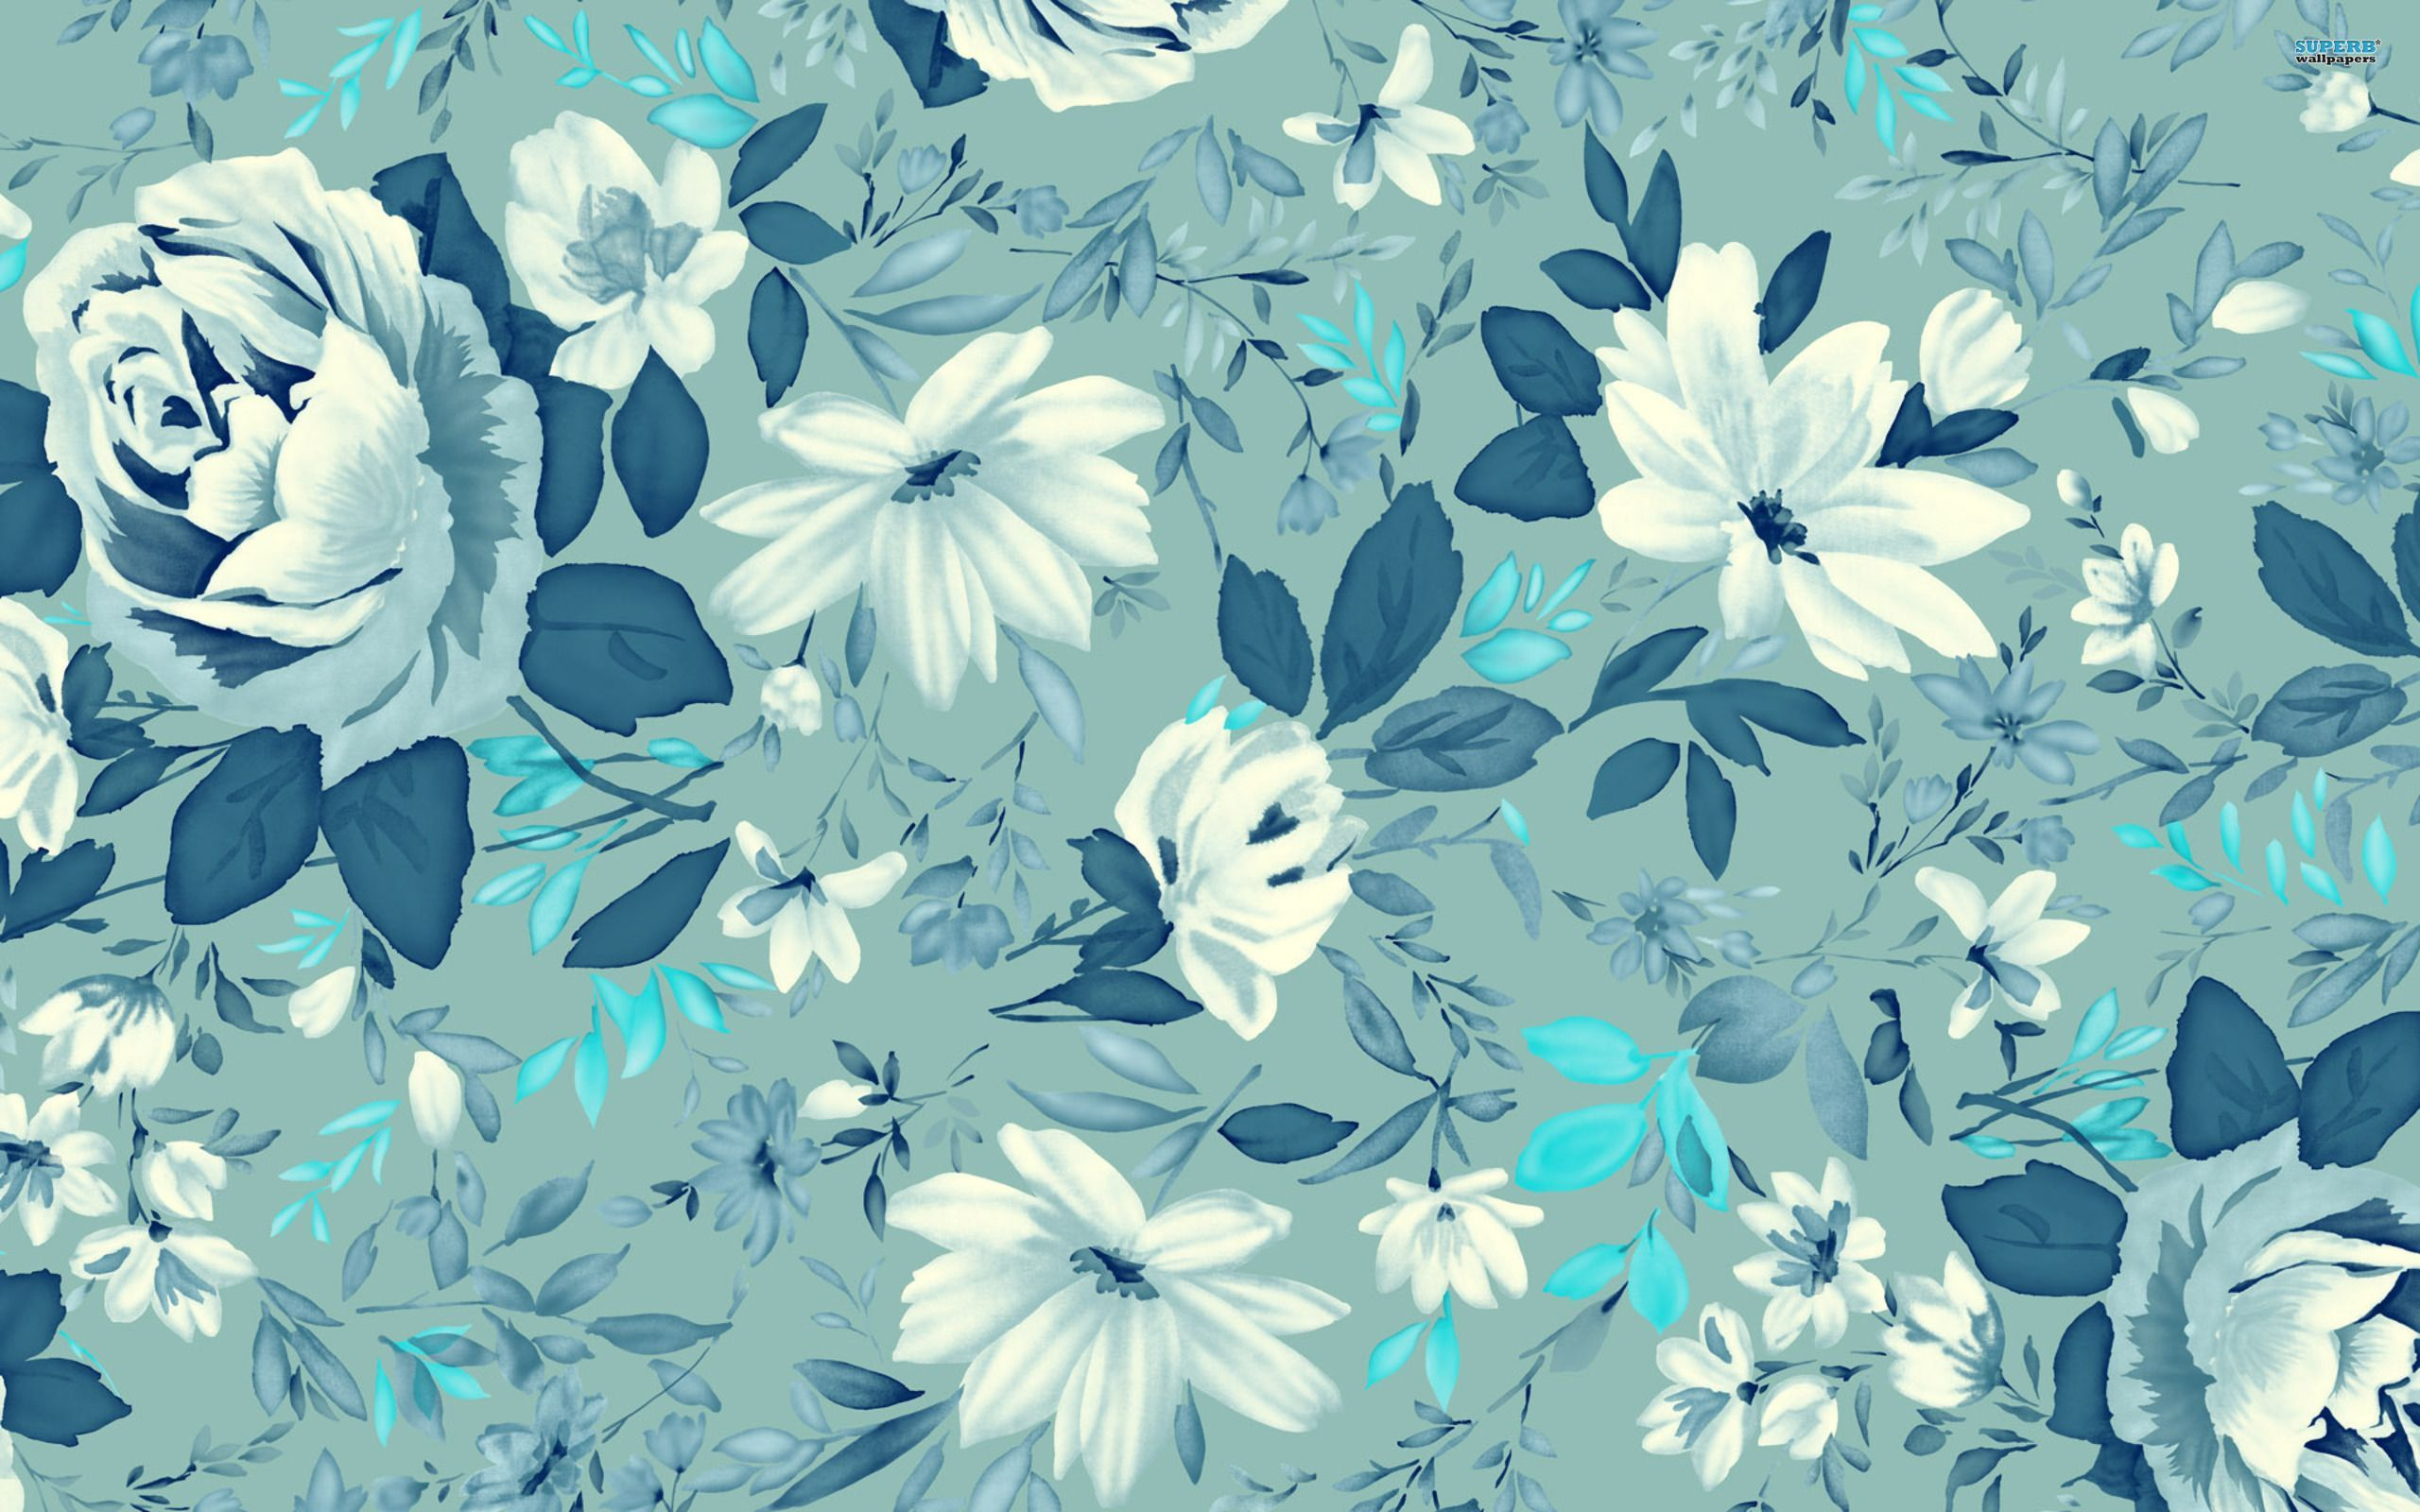 2560x1600 ಌ.blue Flowers Design.ಌ wallpaper free | HD Desktop Wallpapers ...